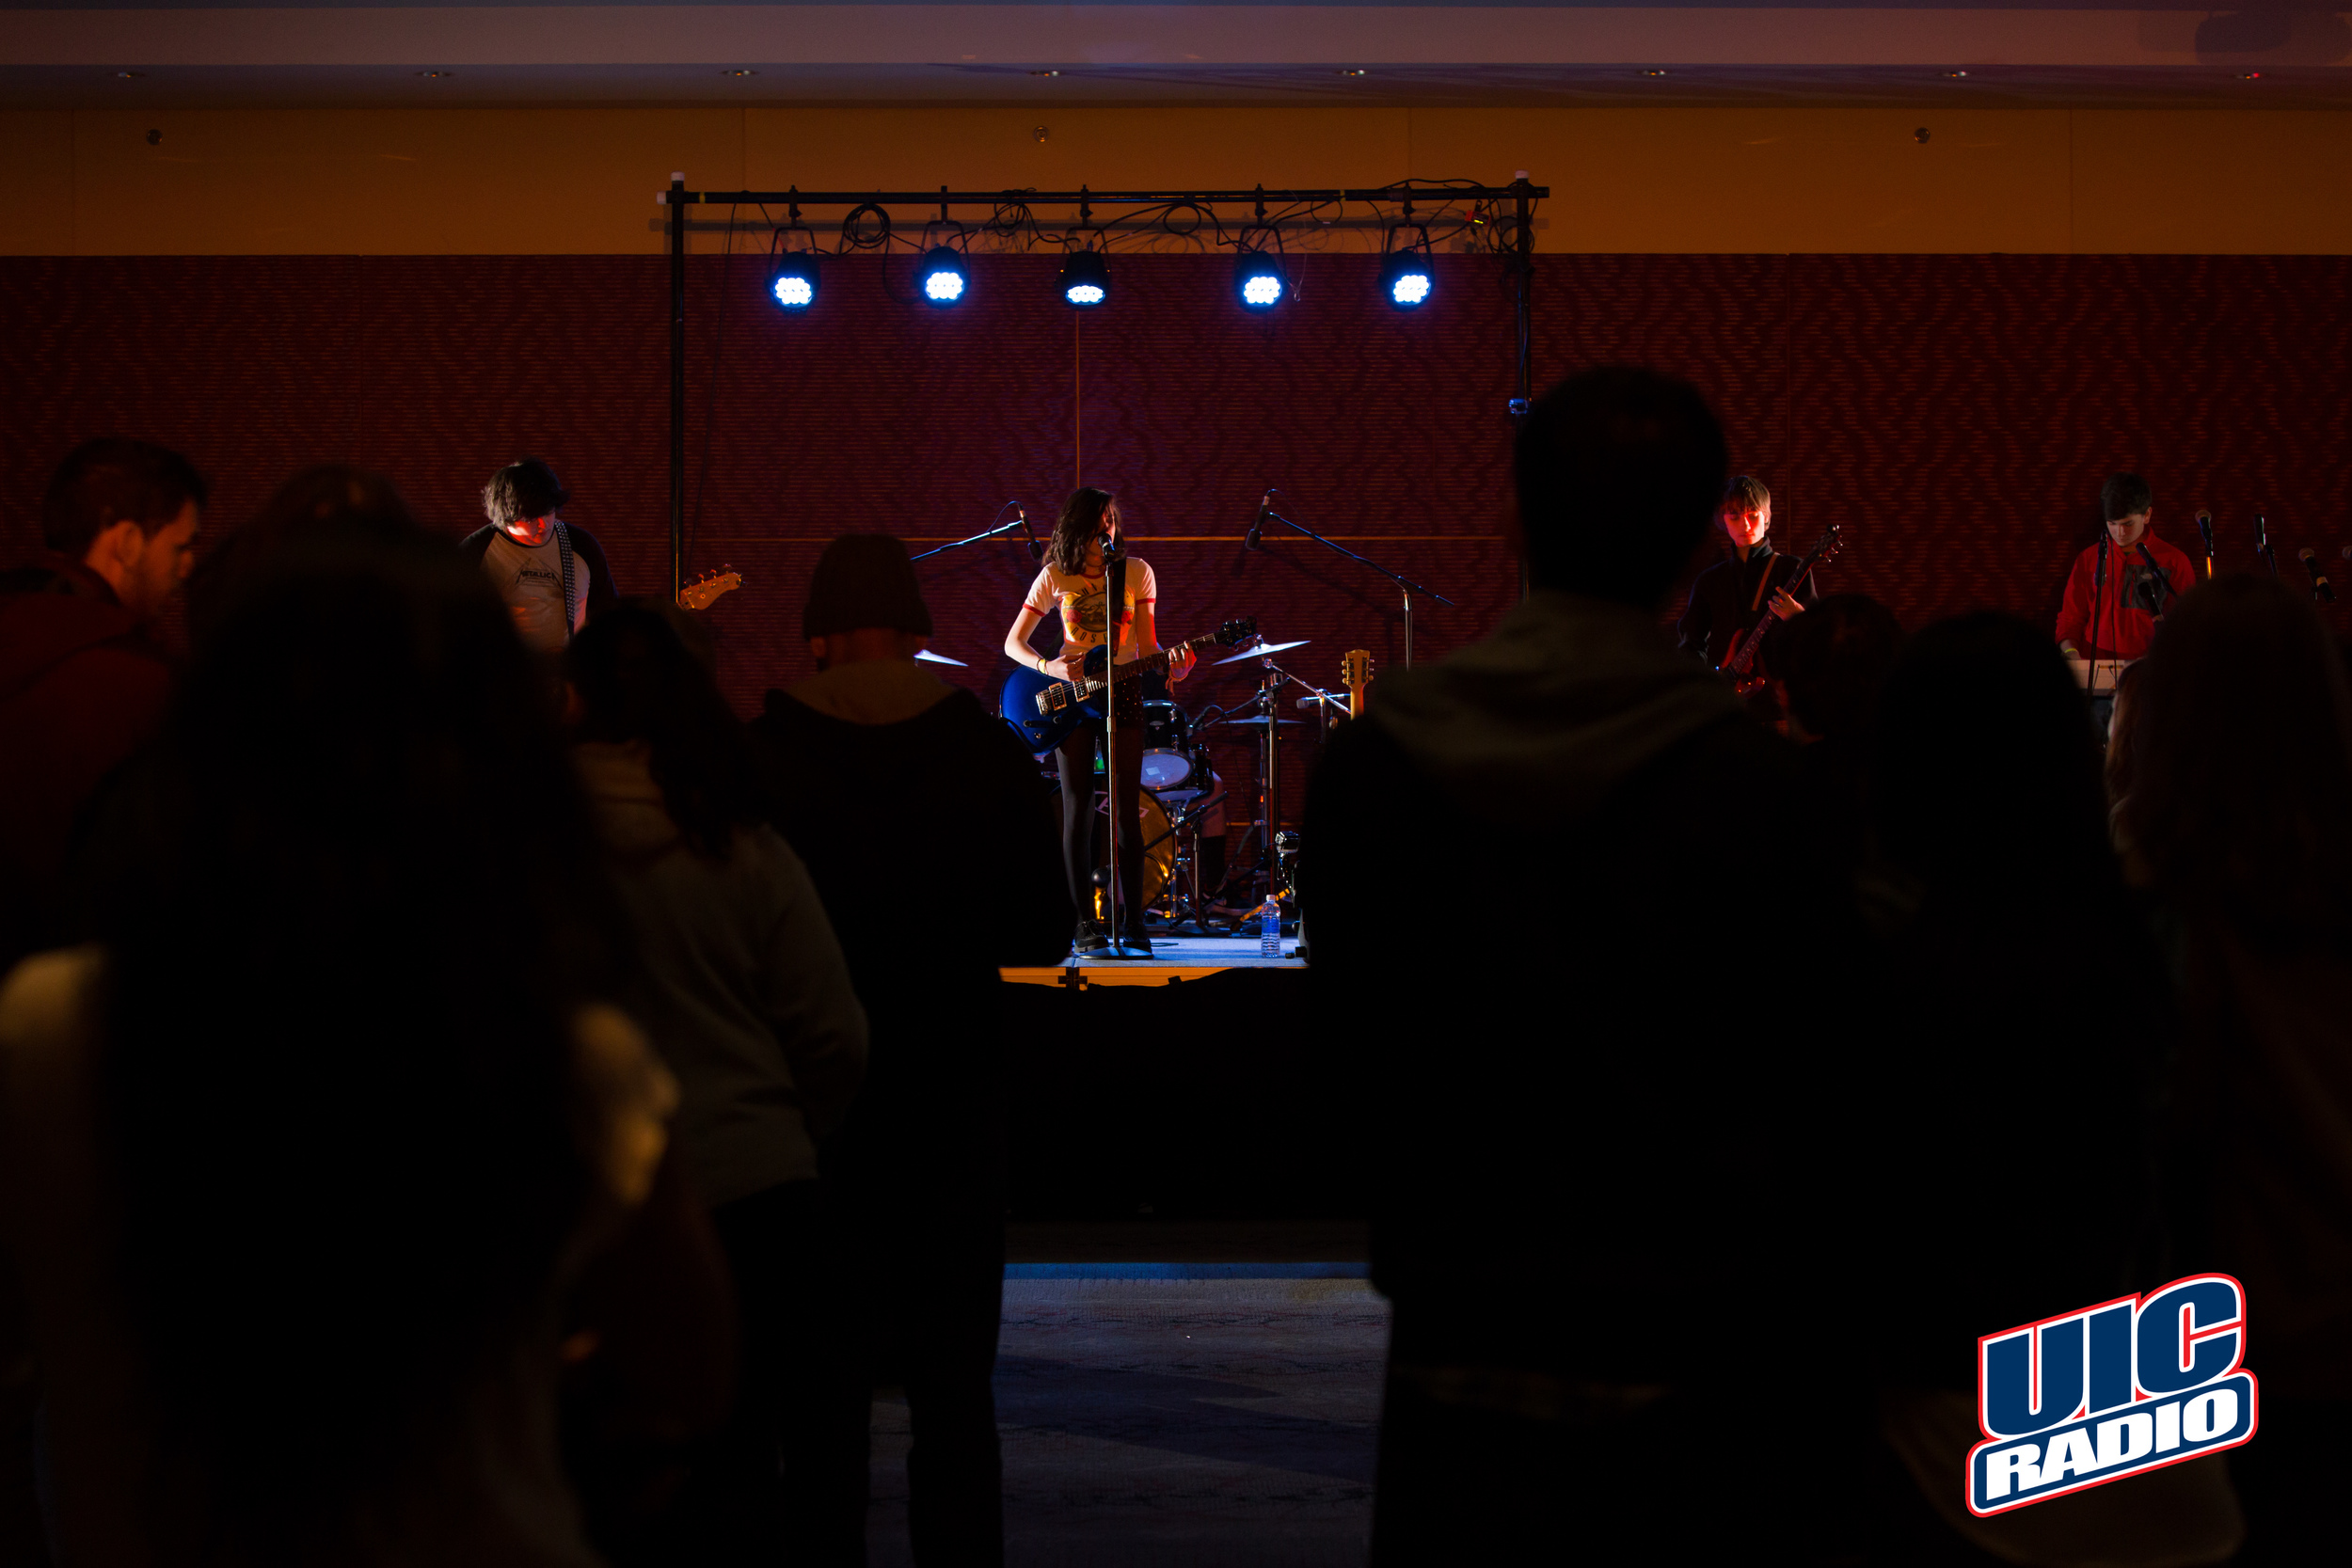 176_352_UIC Battle of the Bands 2016.jpg